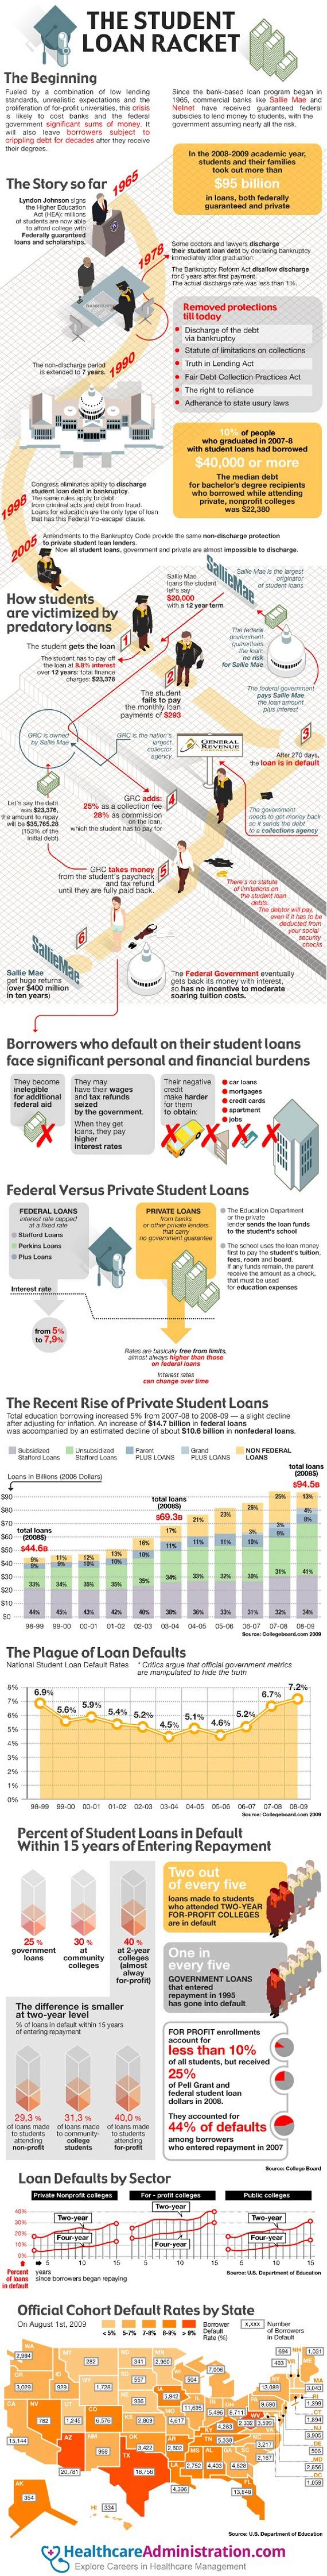 Exposing the Student Loan Racket Infographic